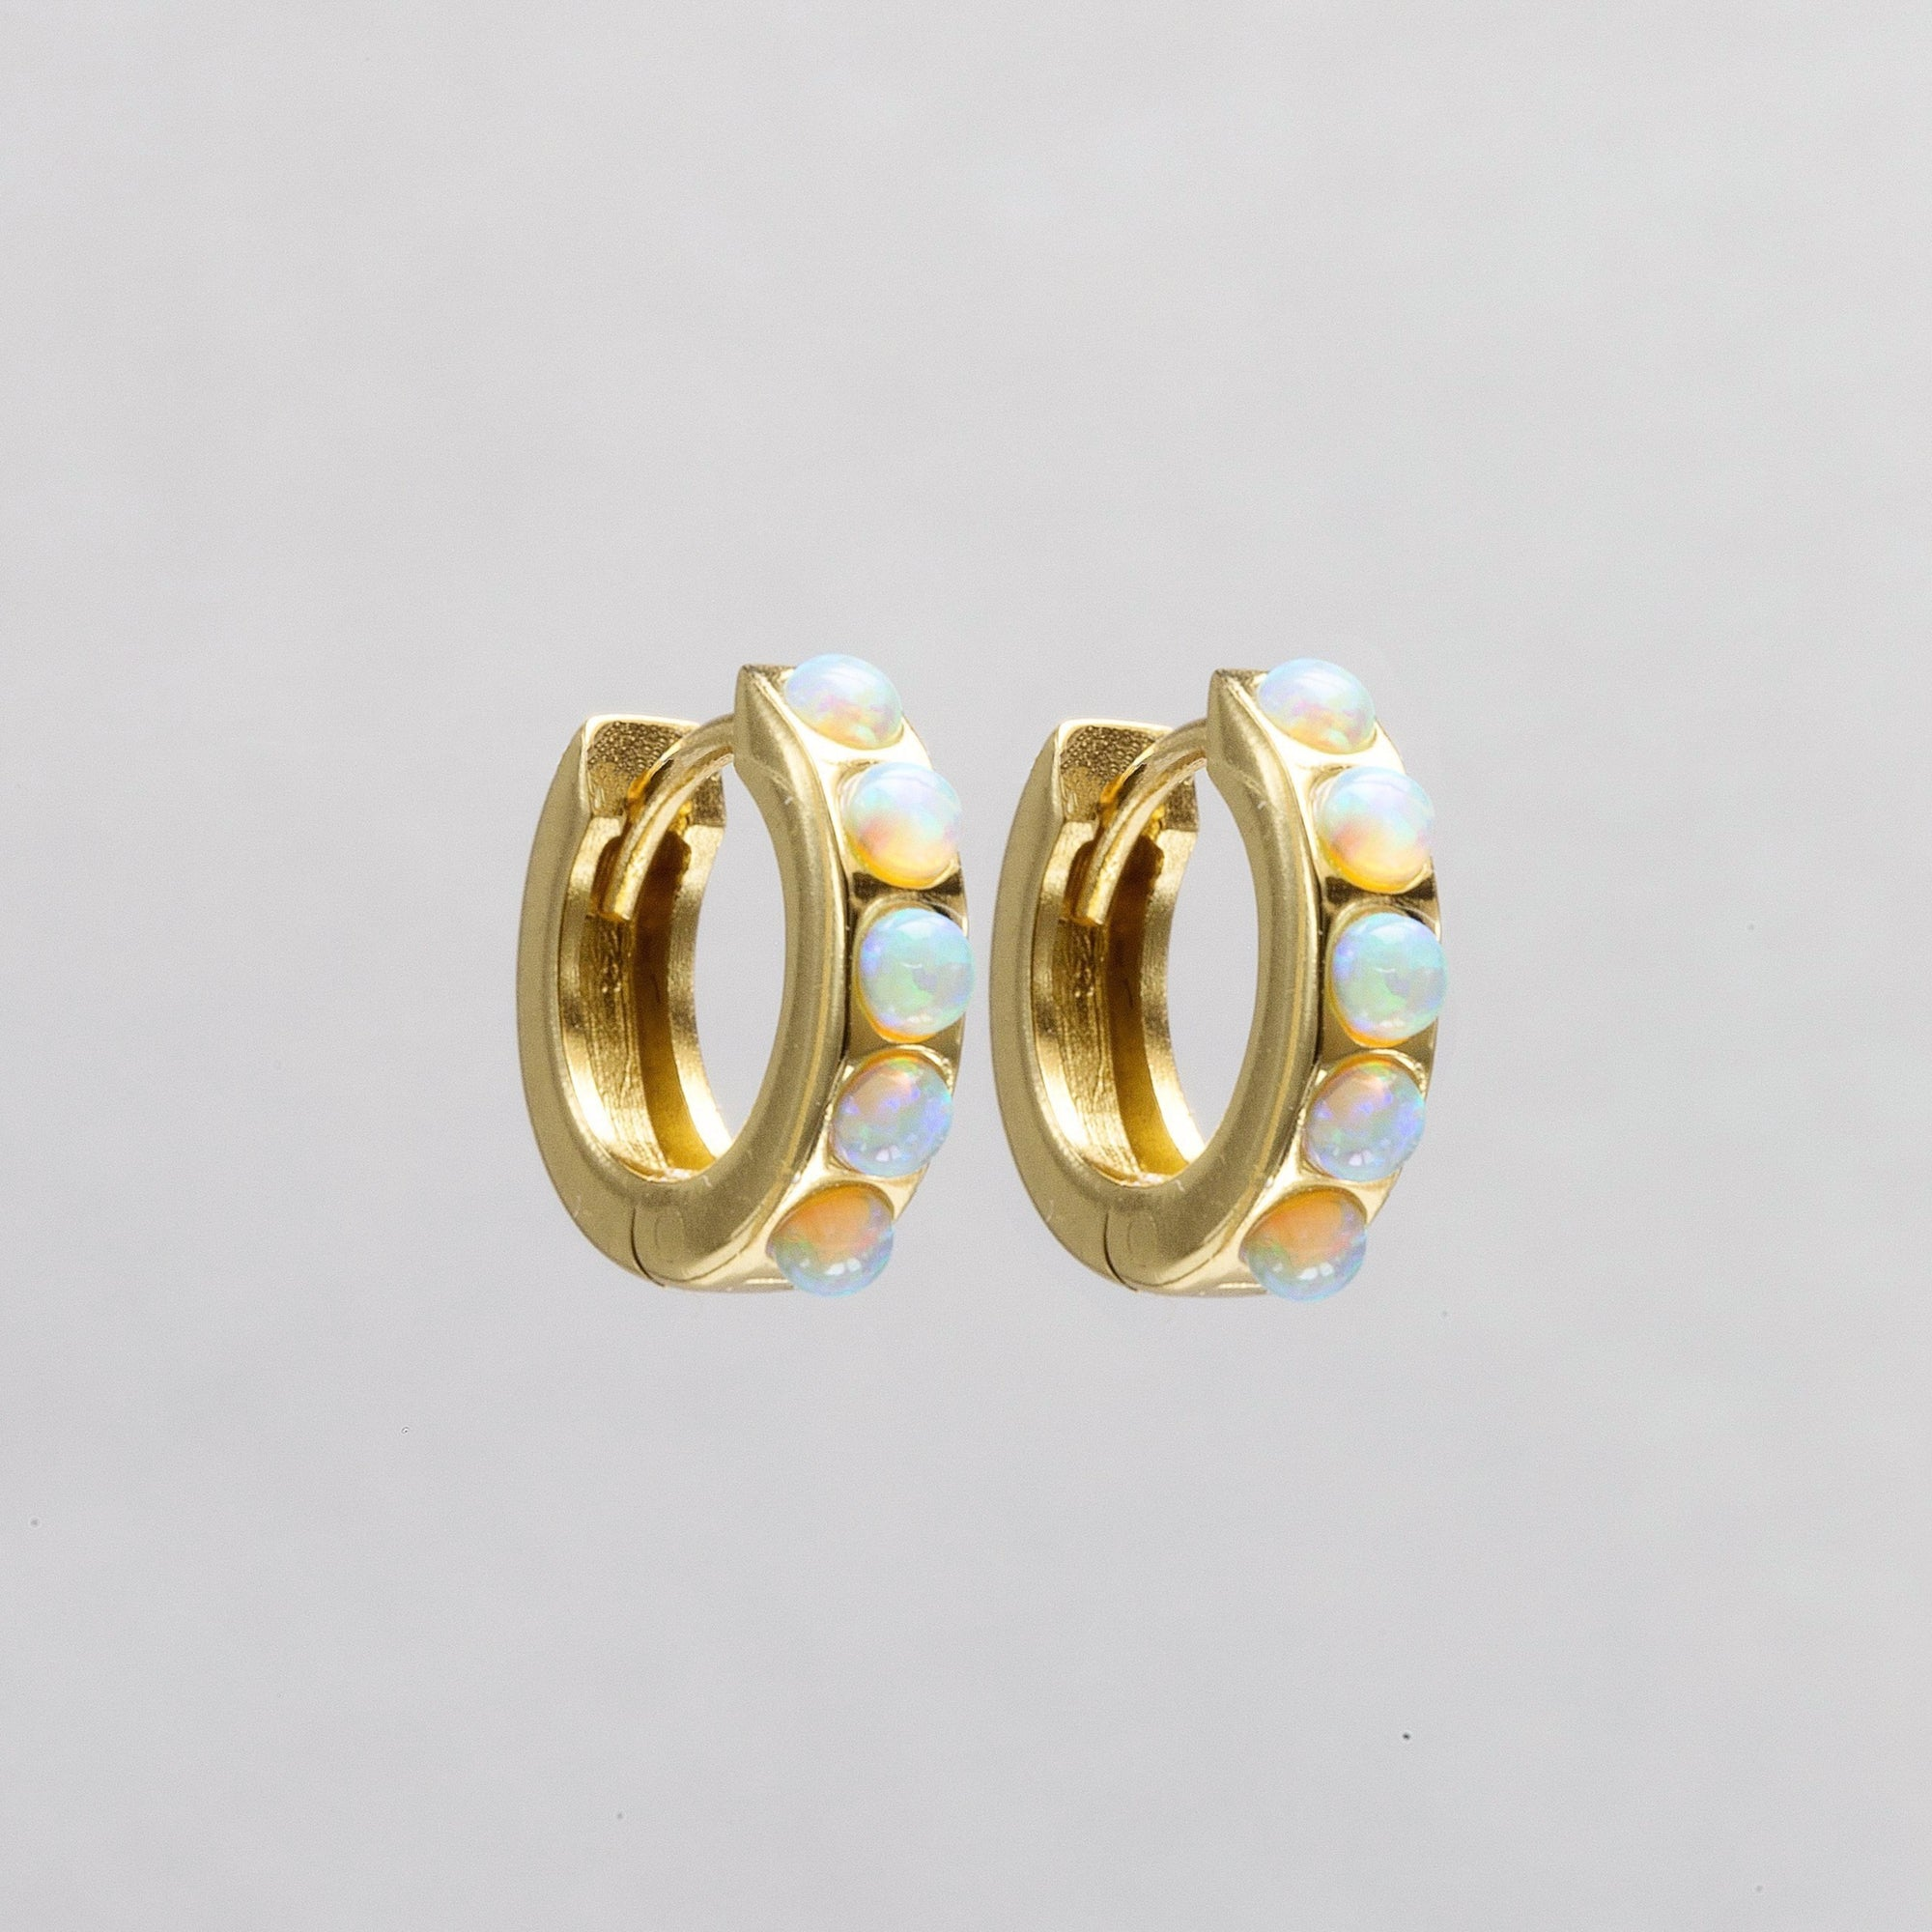 Gold plated silver hoop earrings with line opals